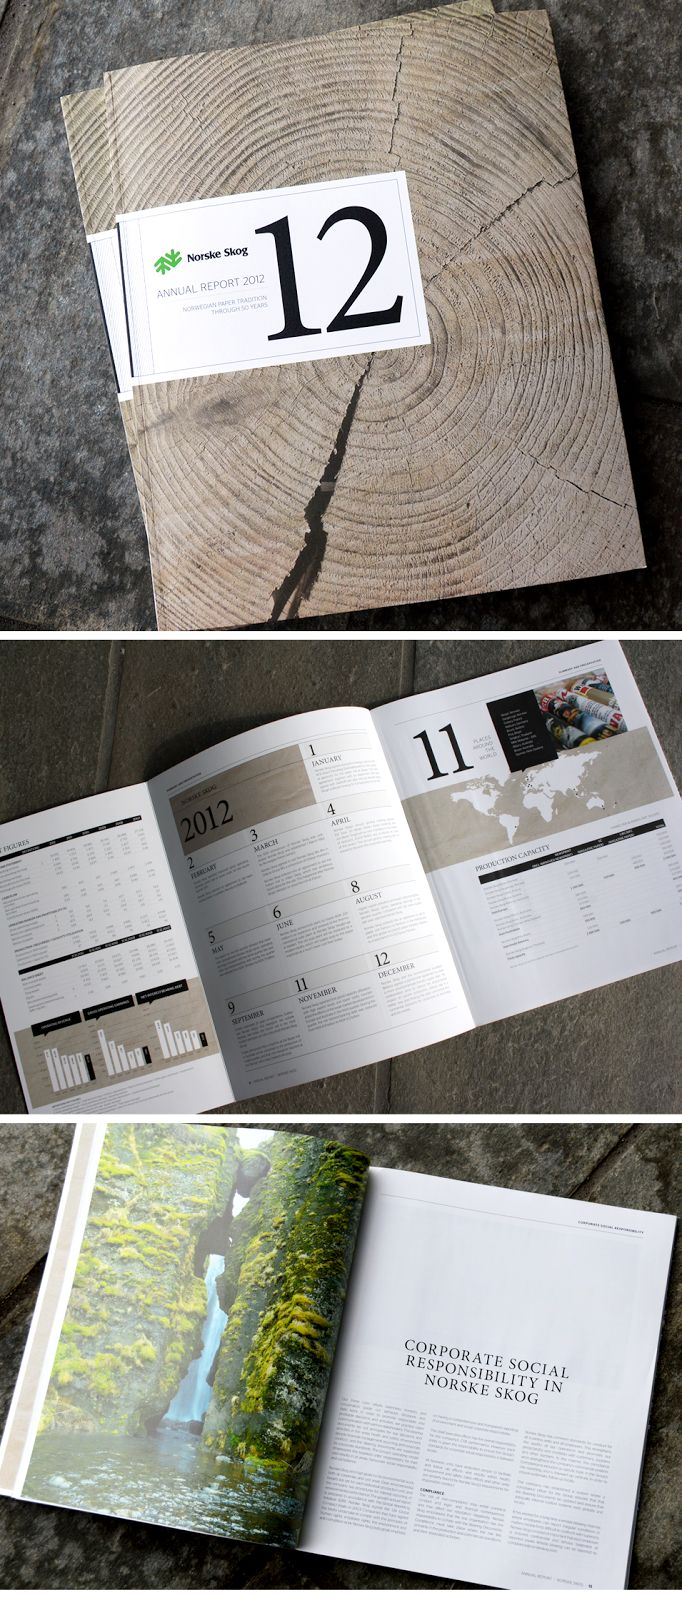 I like the theme throughout this annual report. The organic and natural feel is similar to what I want to do with the Republic of Tea company. One thing I would change is the size of the piece. I don't think it is necessary for the report to be so large.